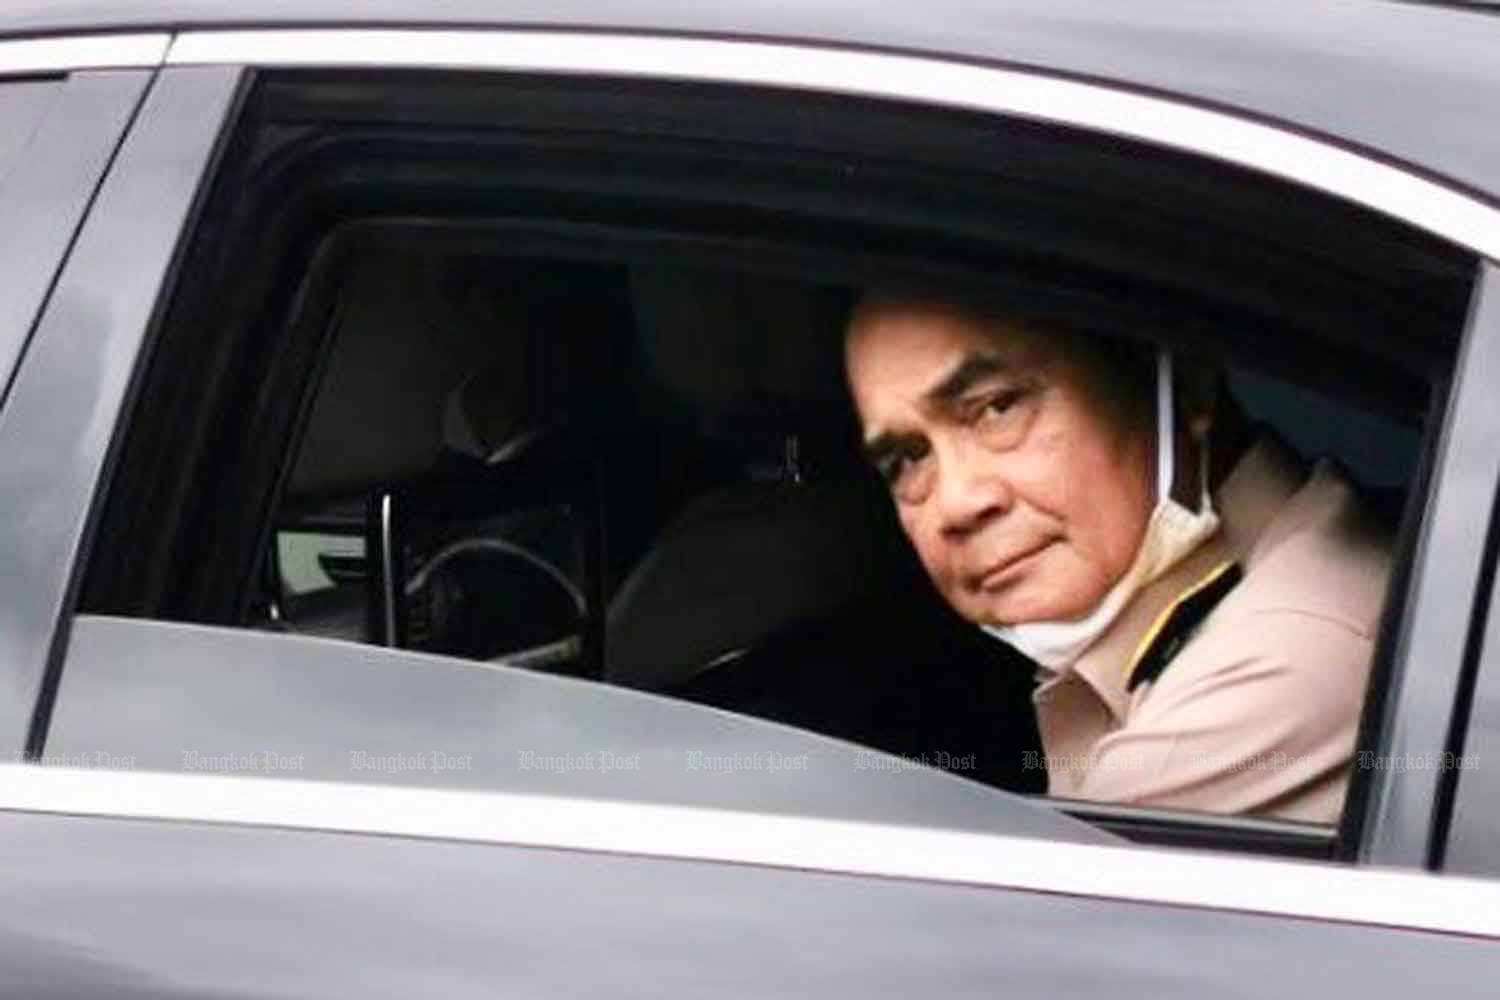 Prime Minister Prayut Chan-o-cha leaves in his limousine after talking about the government's plans for foreign visitors at the War Veterans Organisation in Bangkok on Monday. (Photo: Wassana Nanuam)